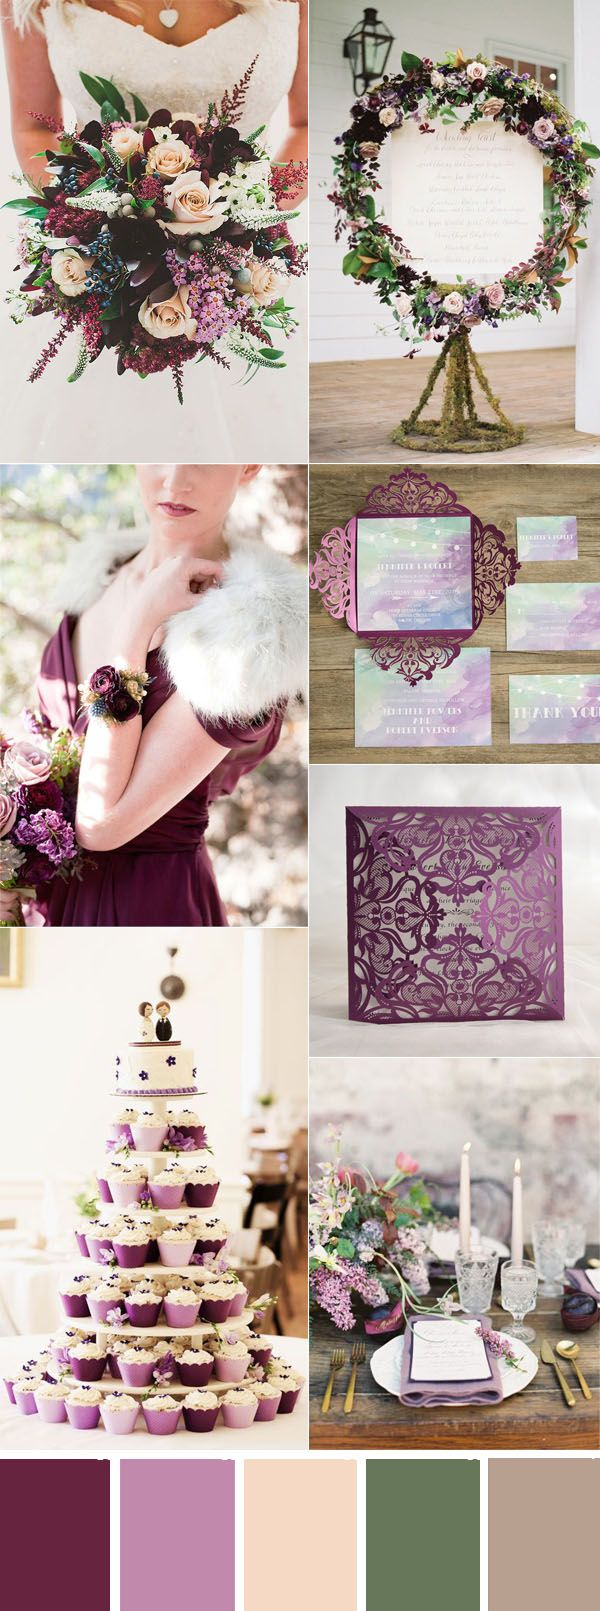 plum purple and blush fall wedding color ideas